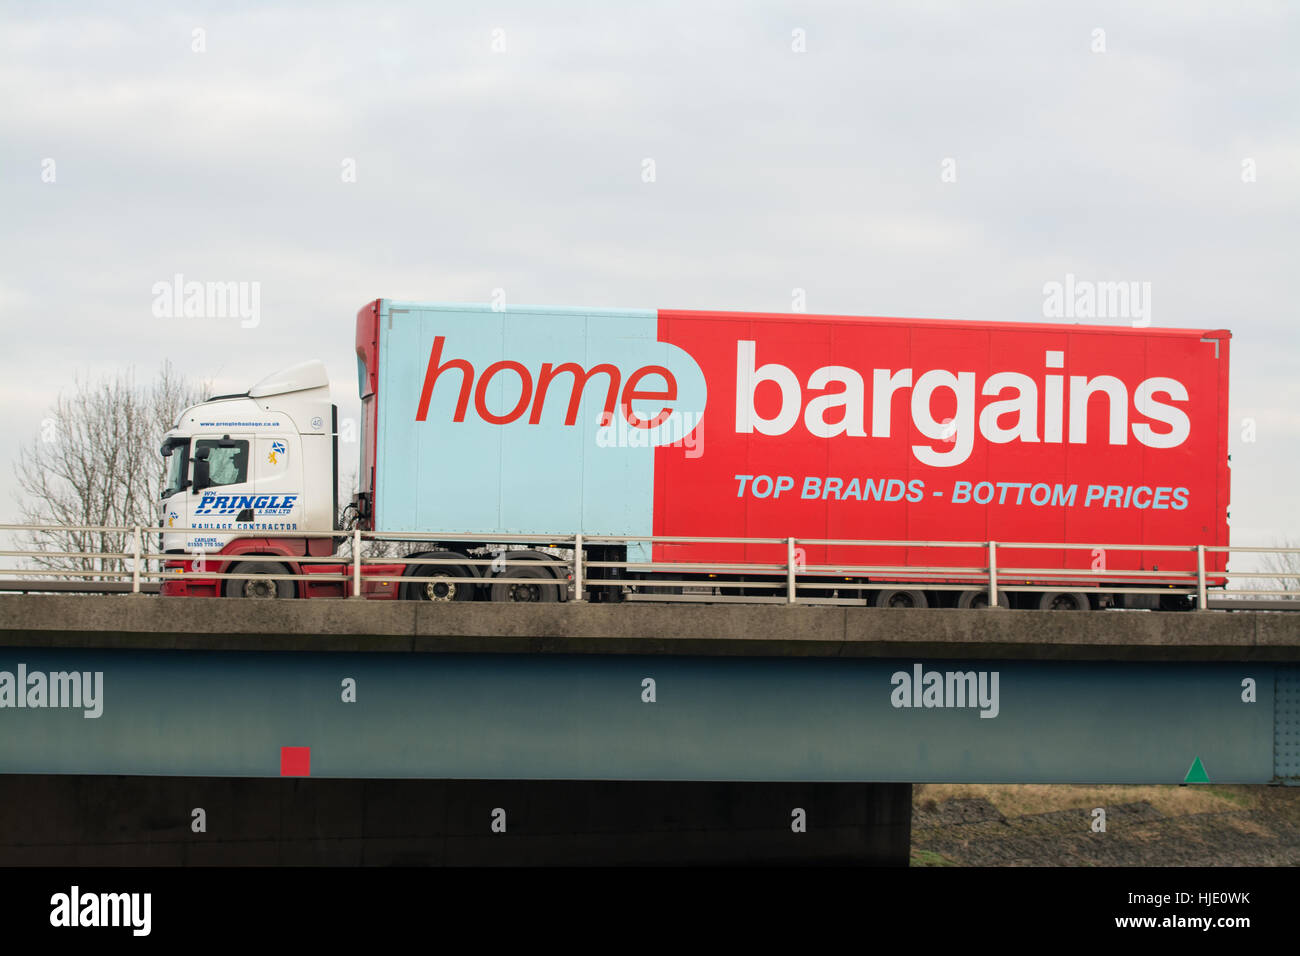 Home Bargains store lorry in Scotland, UK - Stock Image